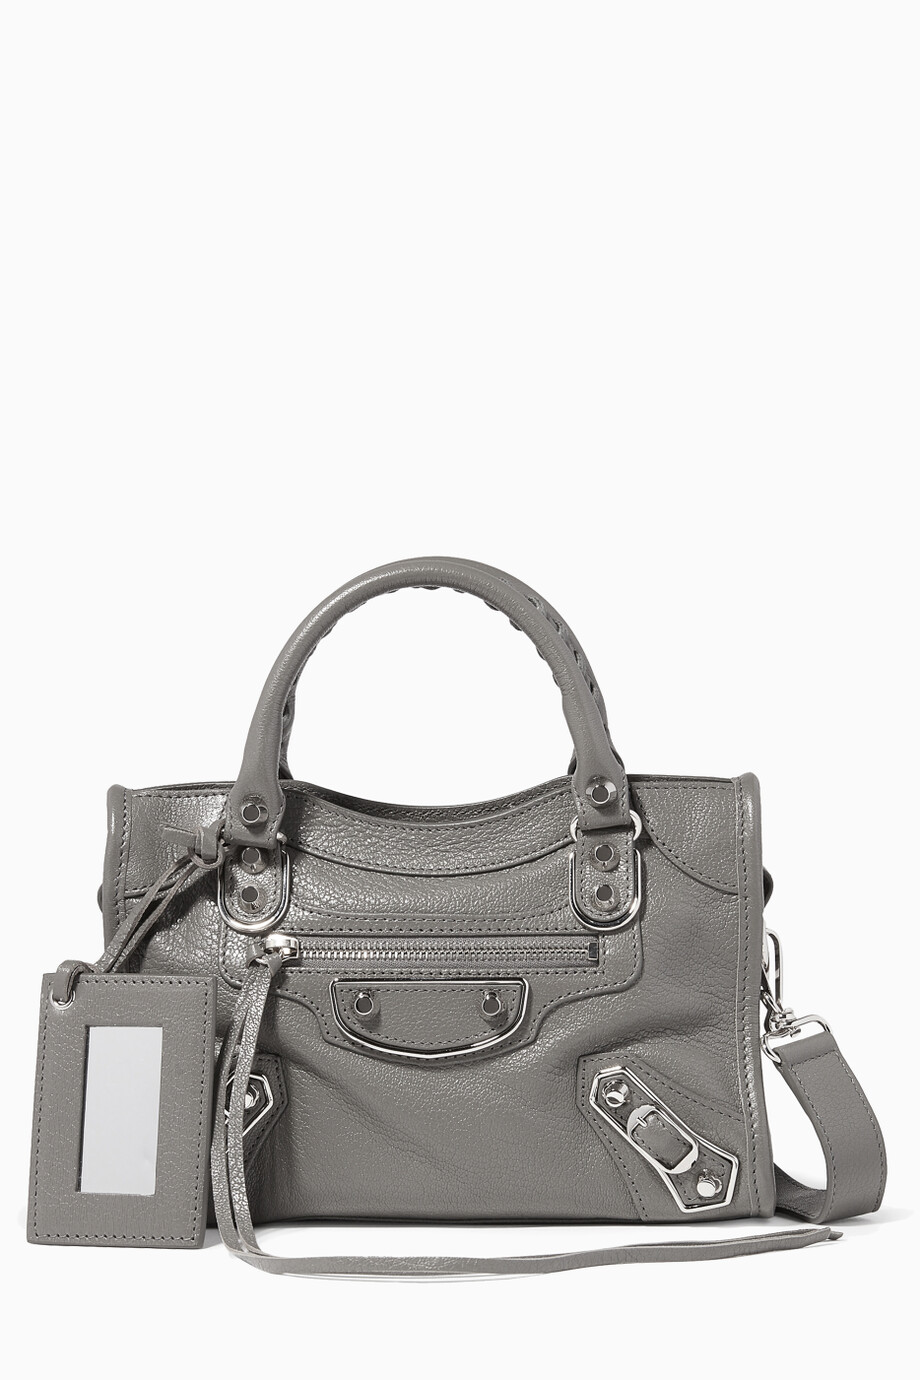 76a8c196fae Shop Balenciaga Grey Dark-Grey Metallic Mini Classic City Edge Shoulder Bag  for Women | Ounass Kuwait